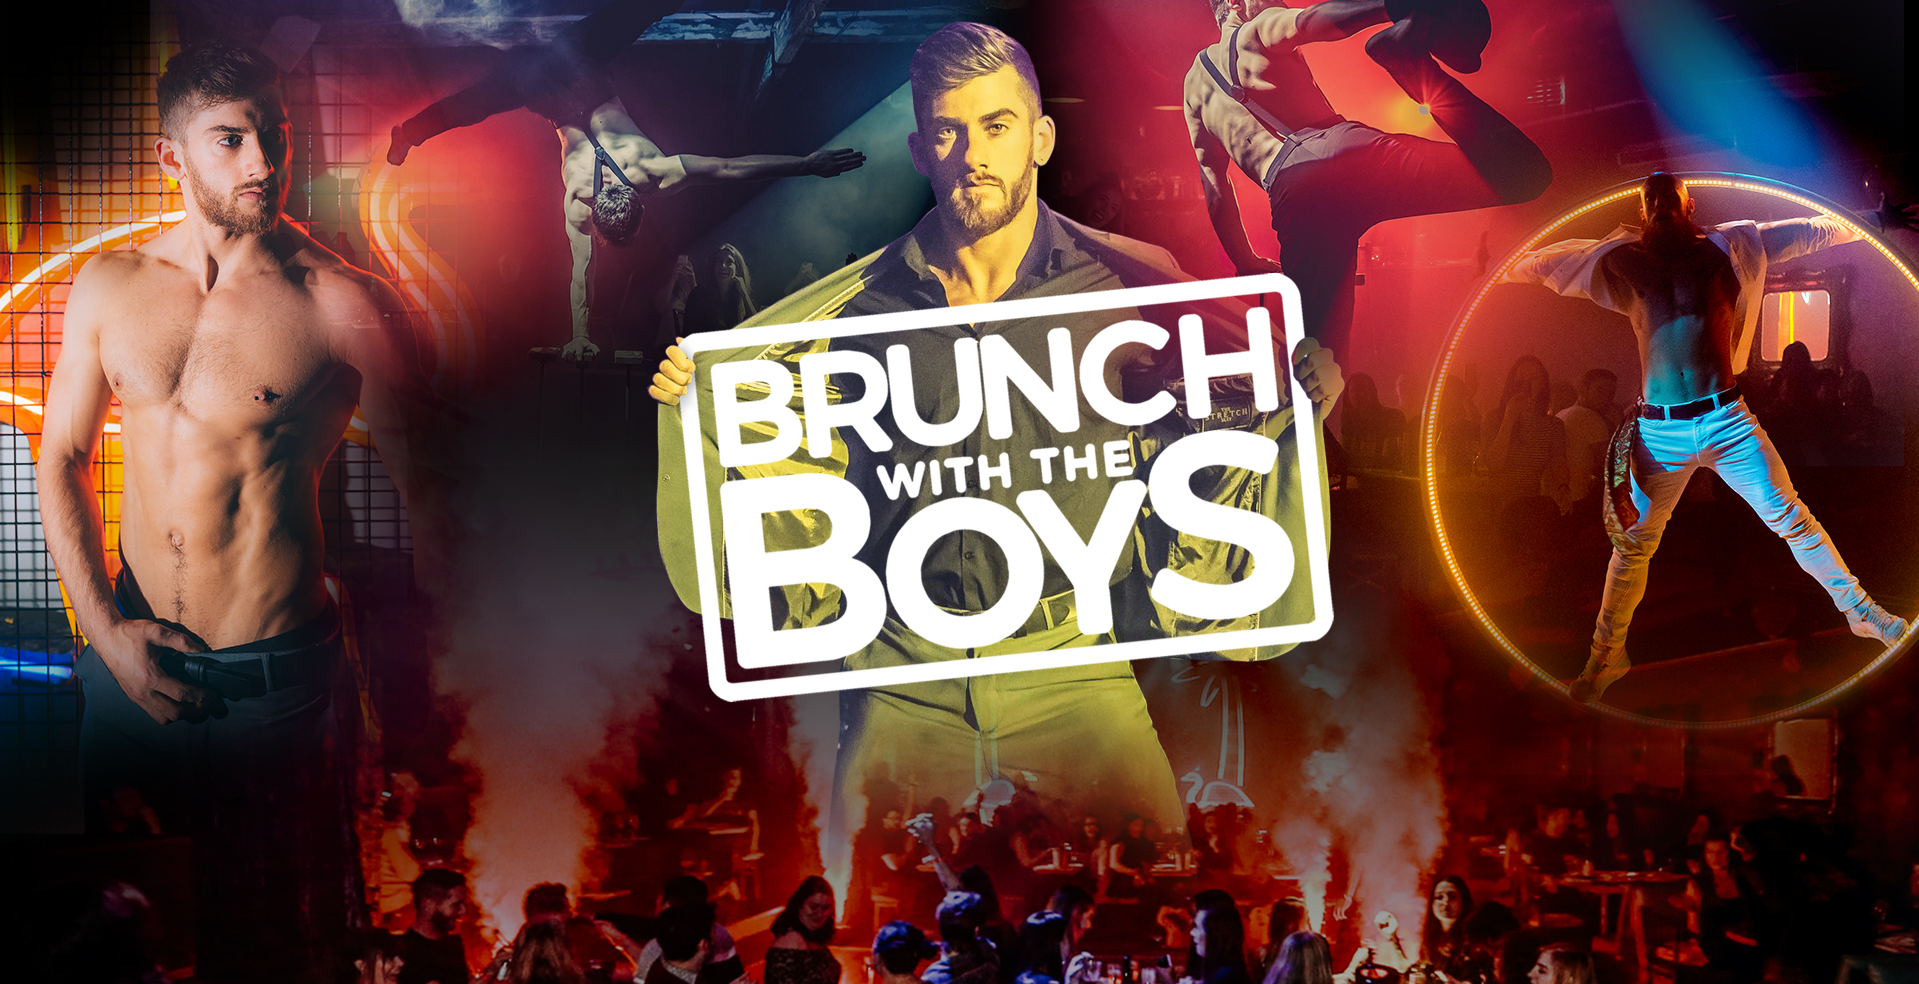 Brunch Weekender @ Brunch with the Boys